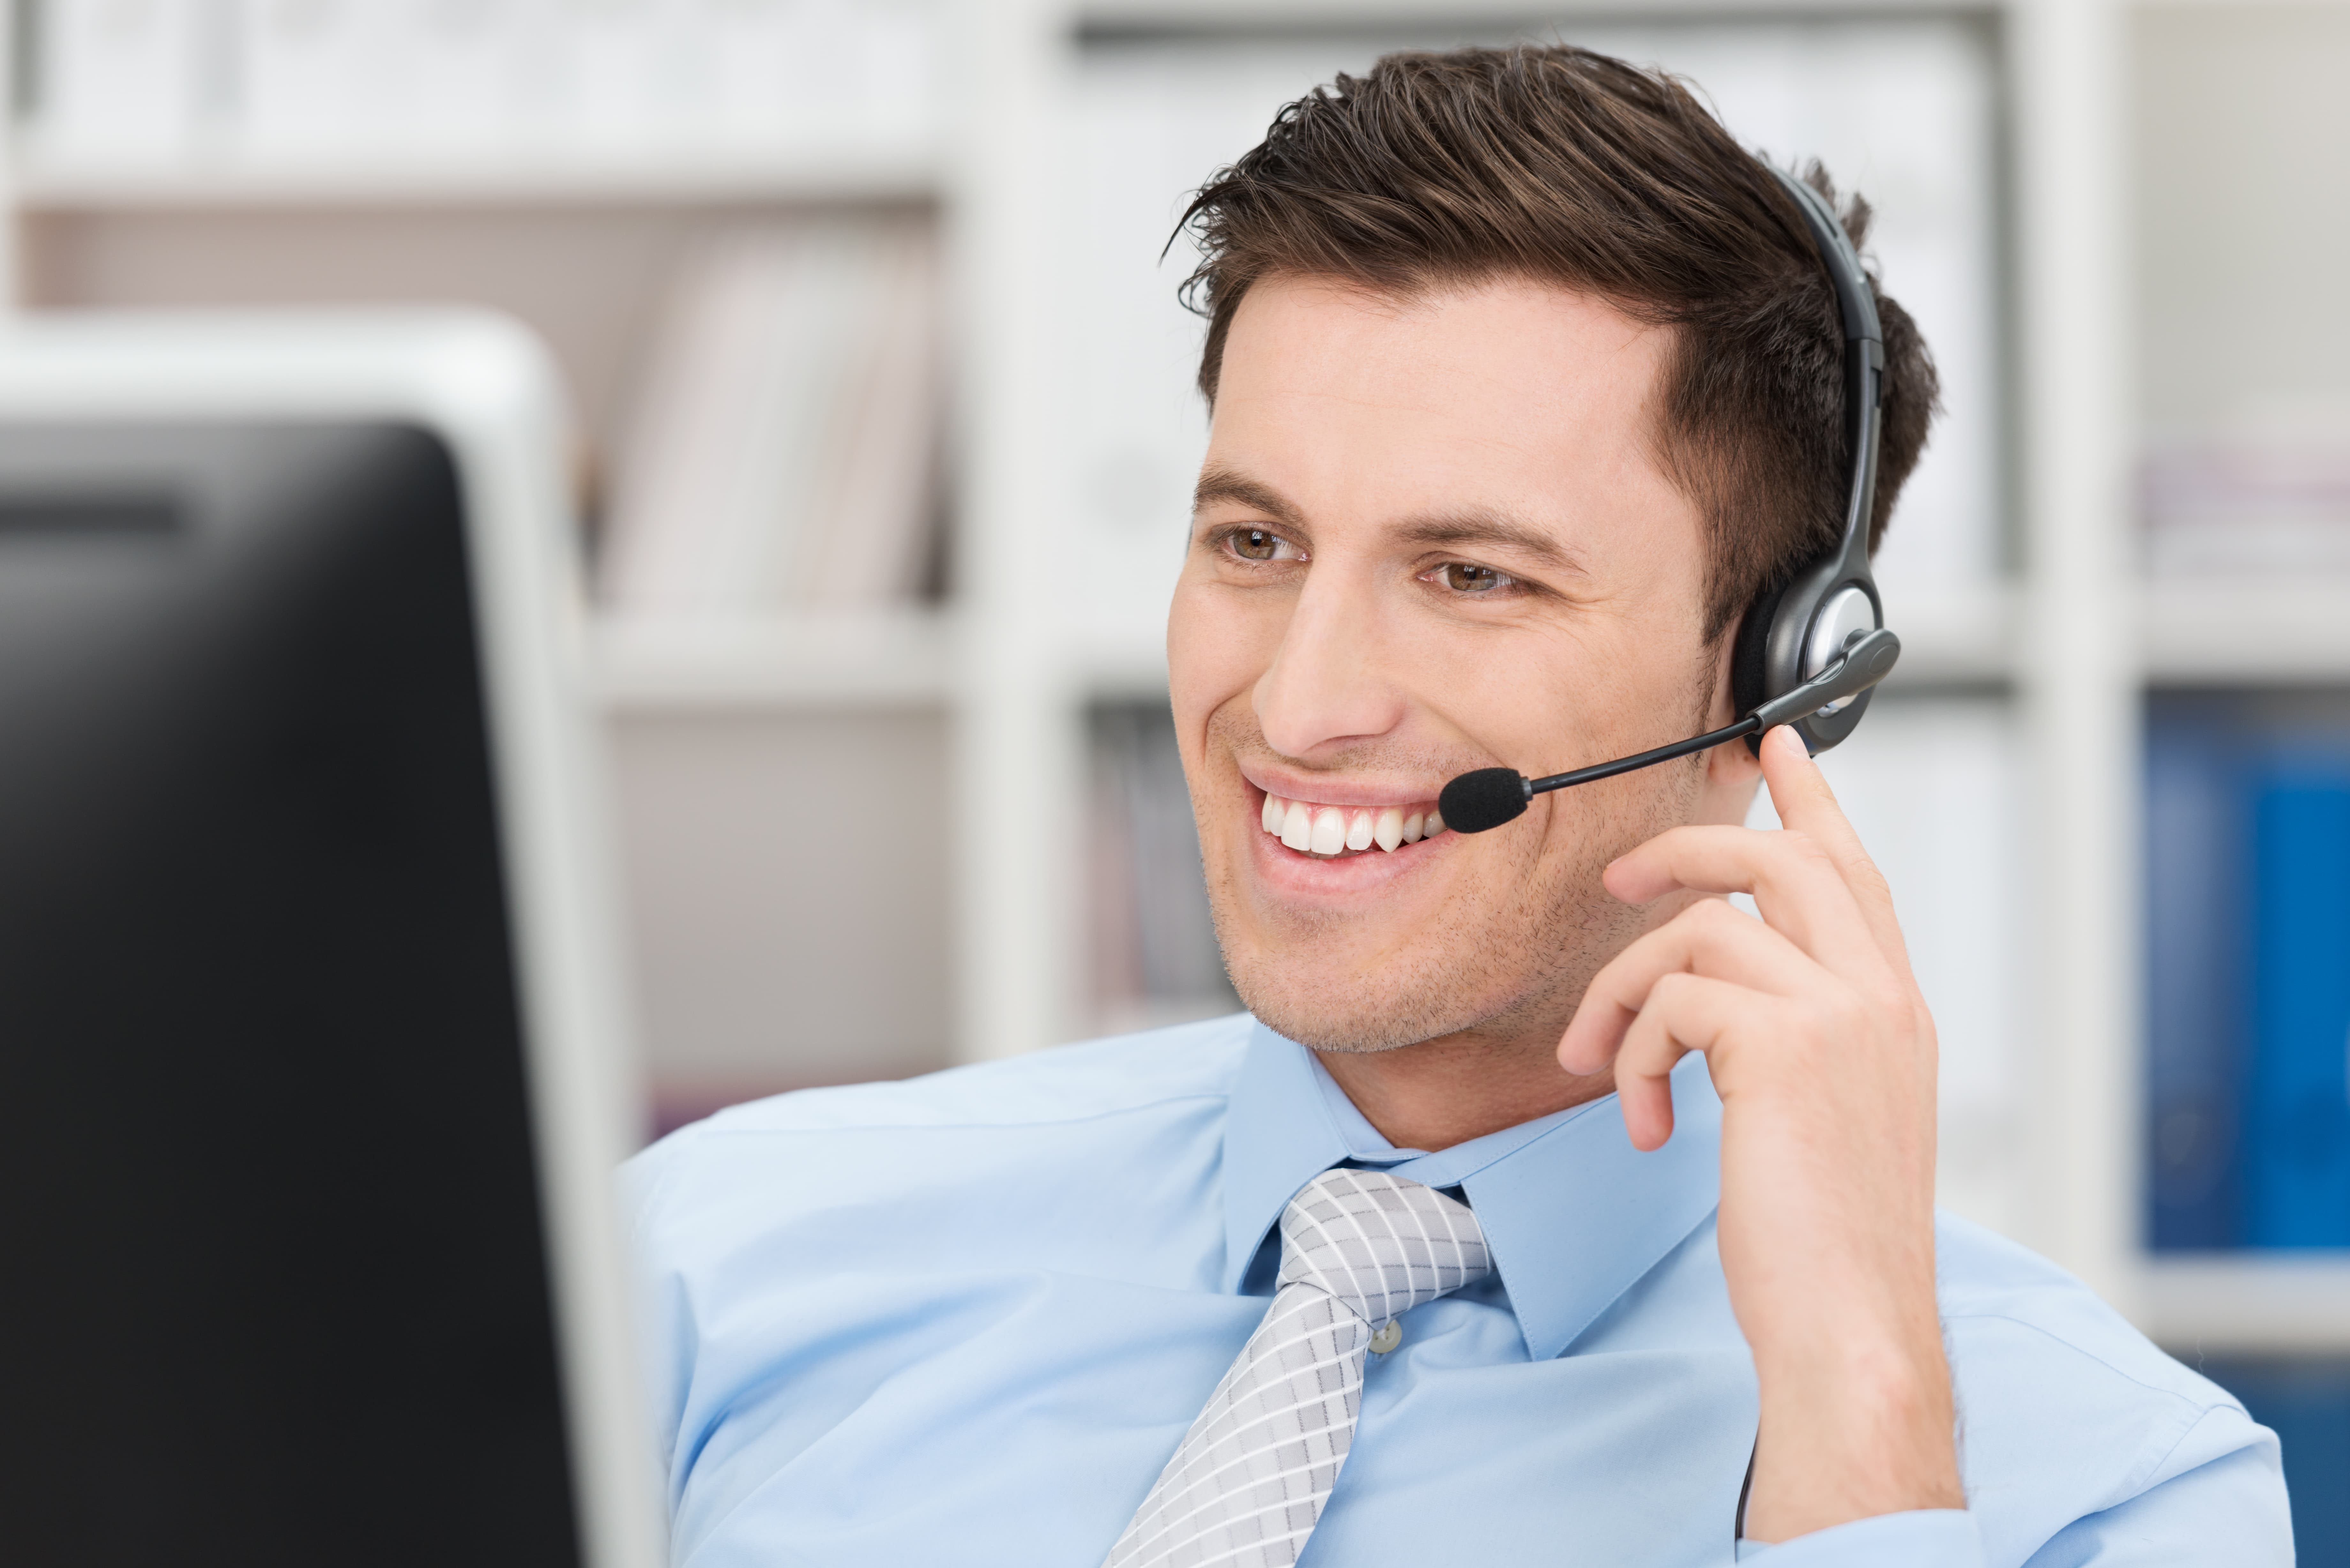 A smiling woman talking on a headset in an office.